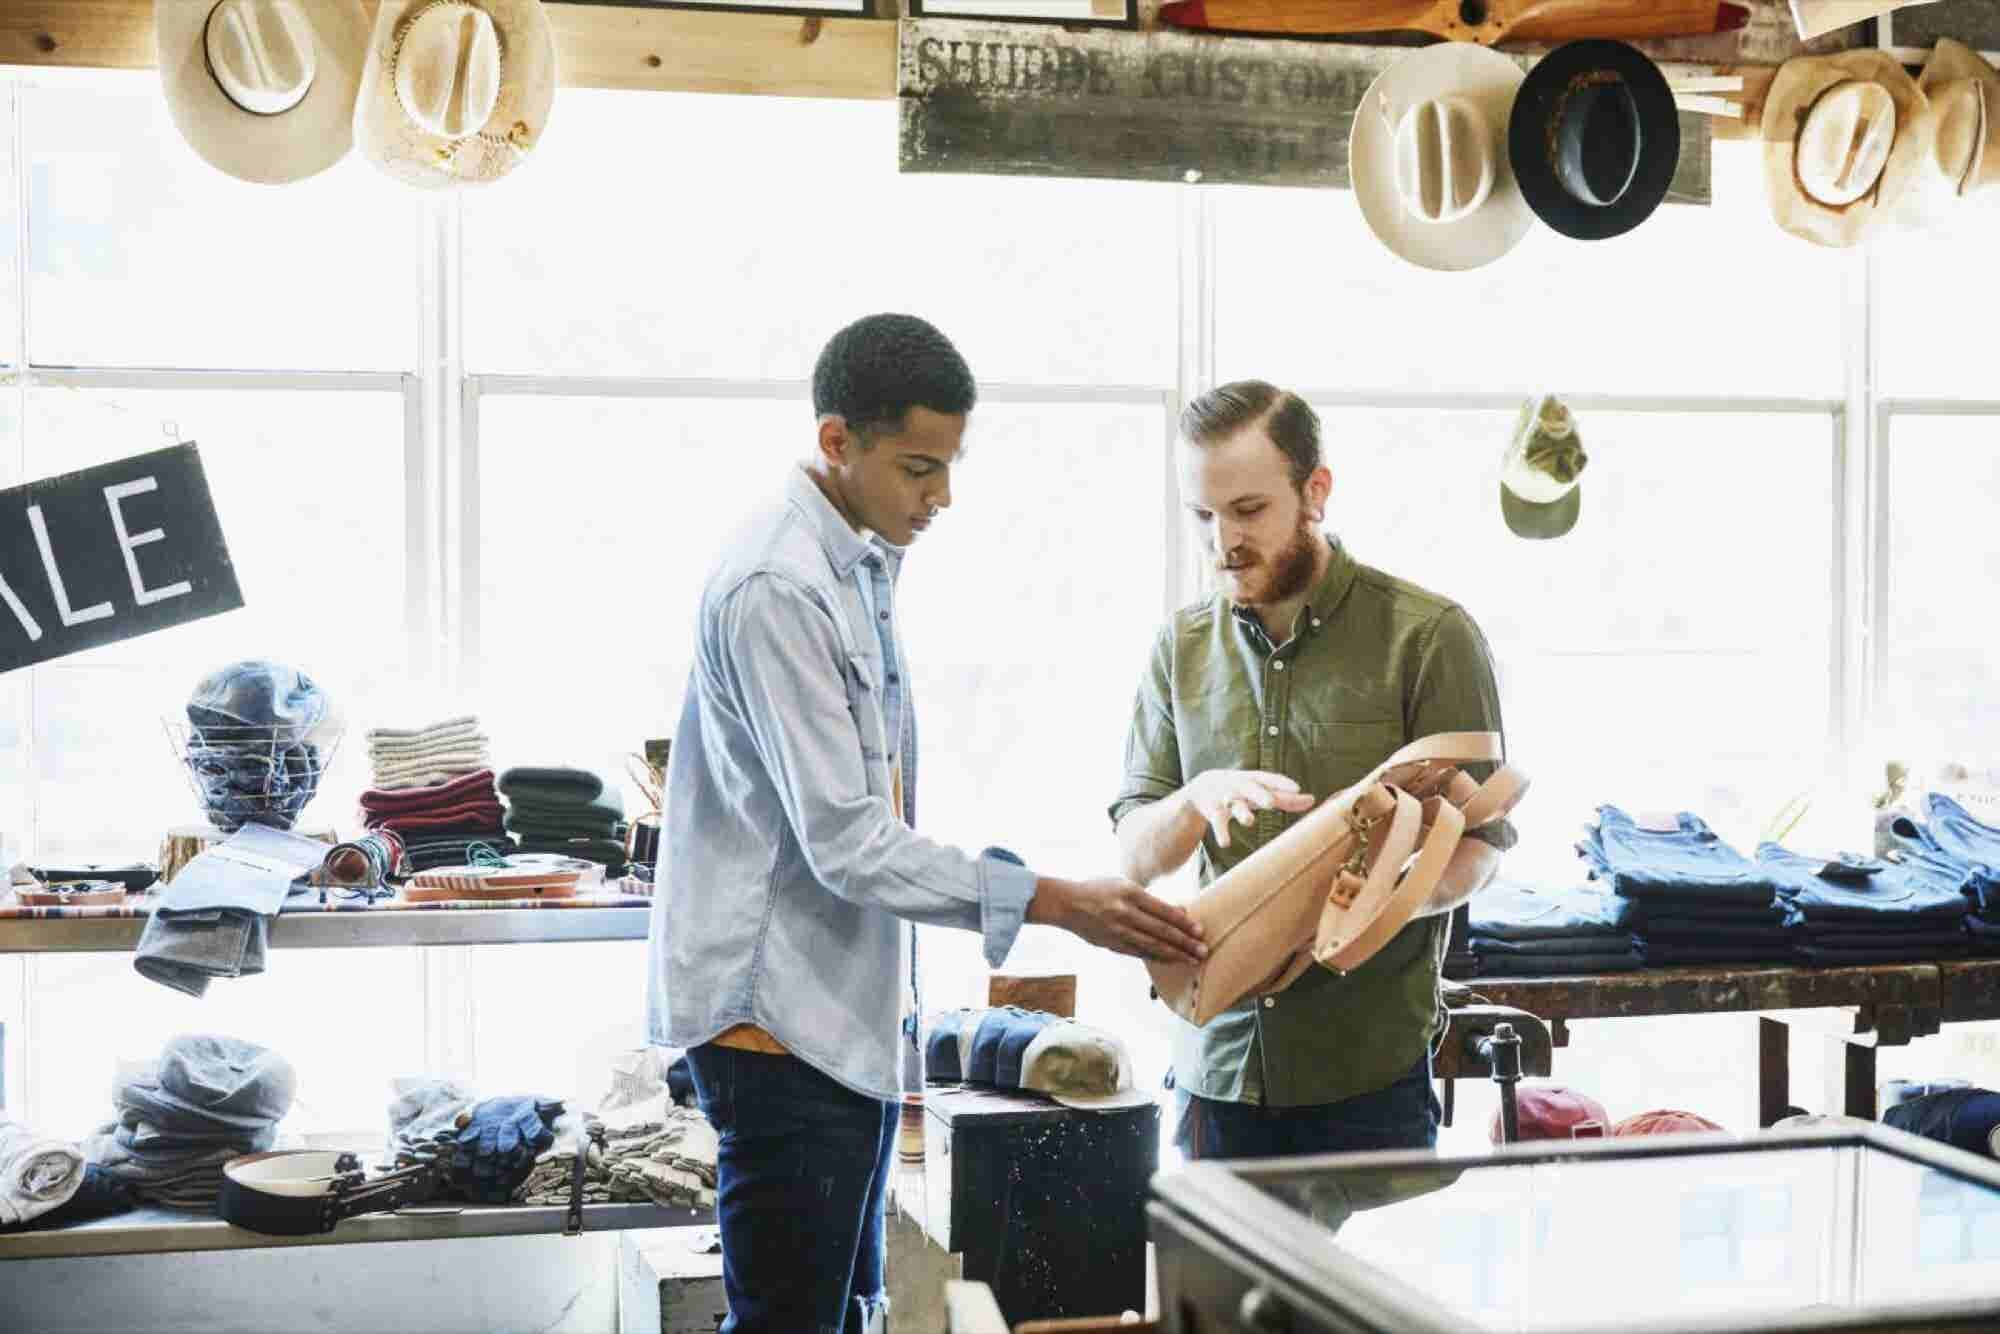 How to Become a More Customer-Centric Business in 5 Steps